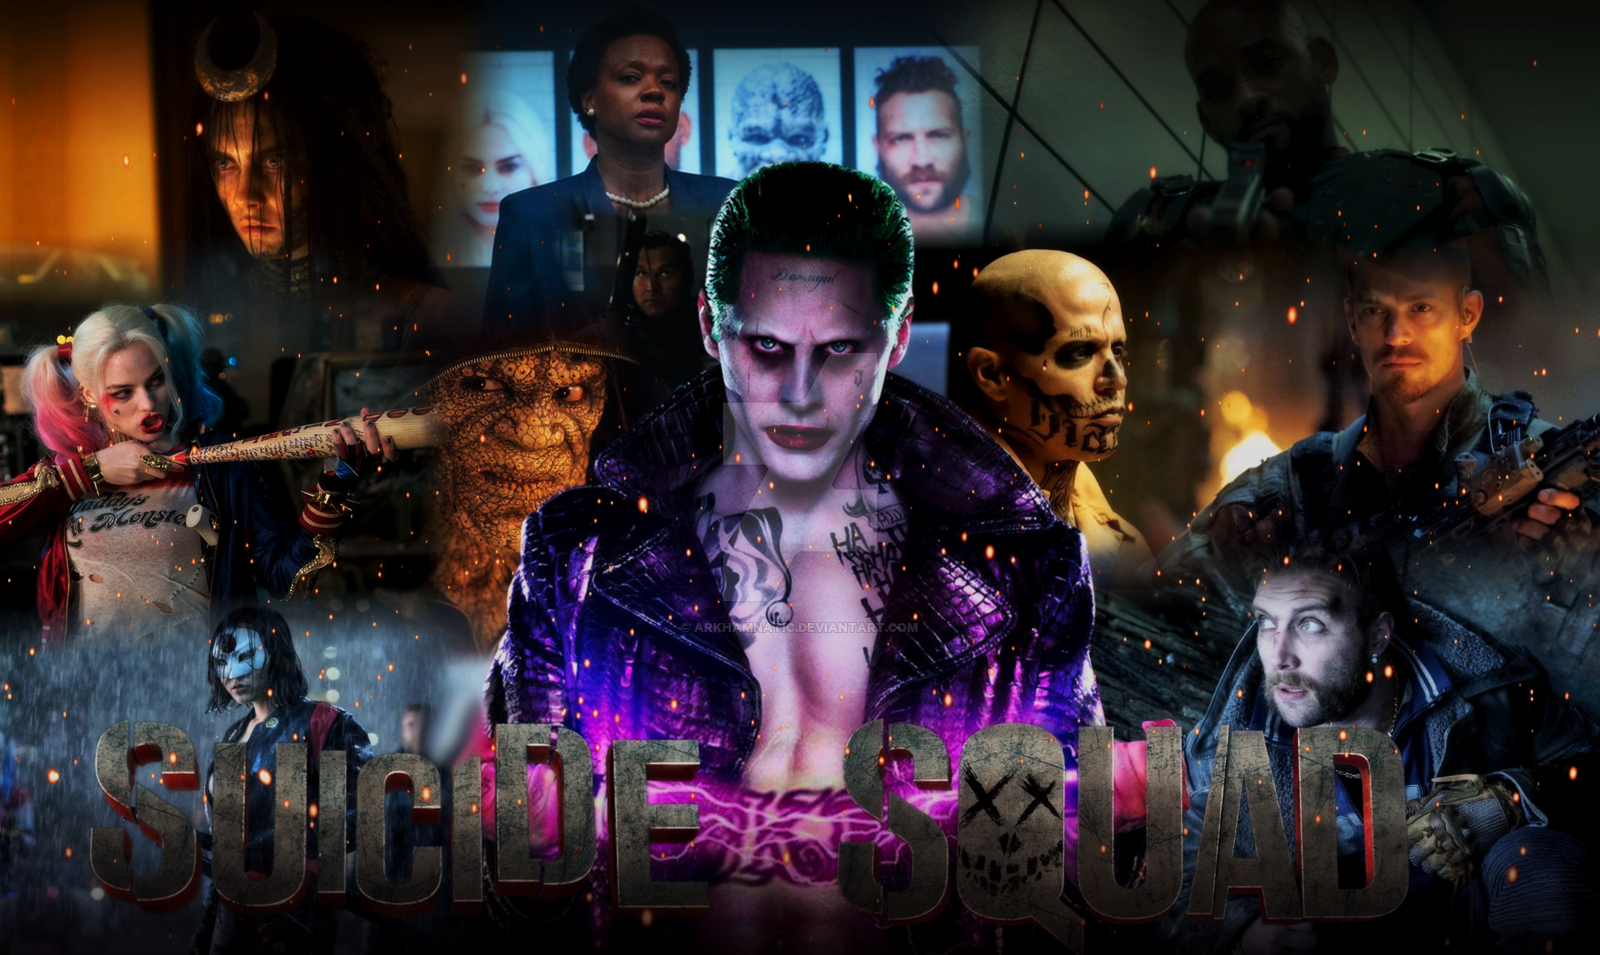 Suicide Squad Movie wallpaper by ArkhamNatic 1600x955